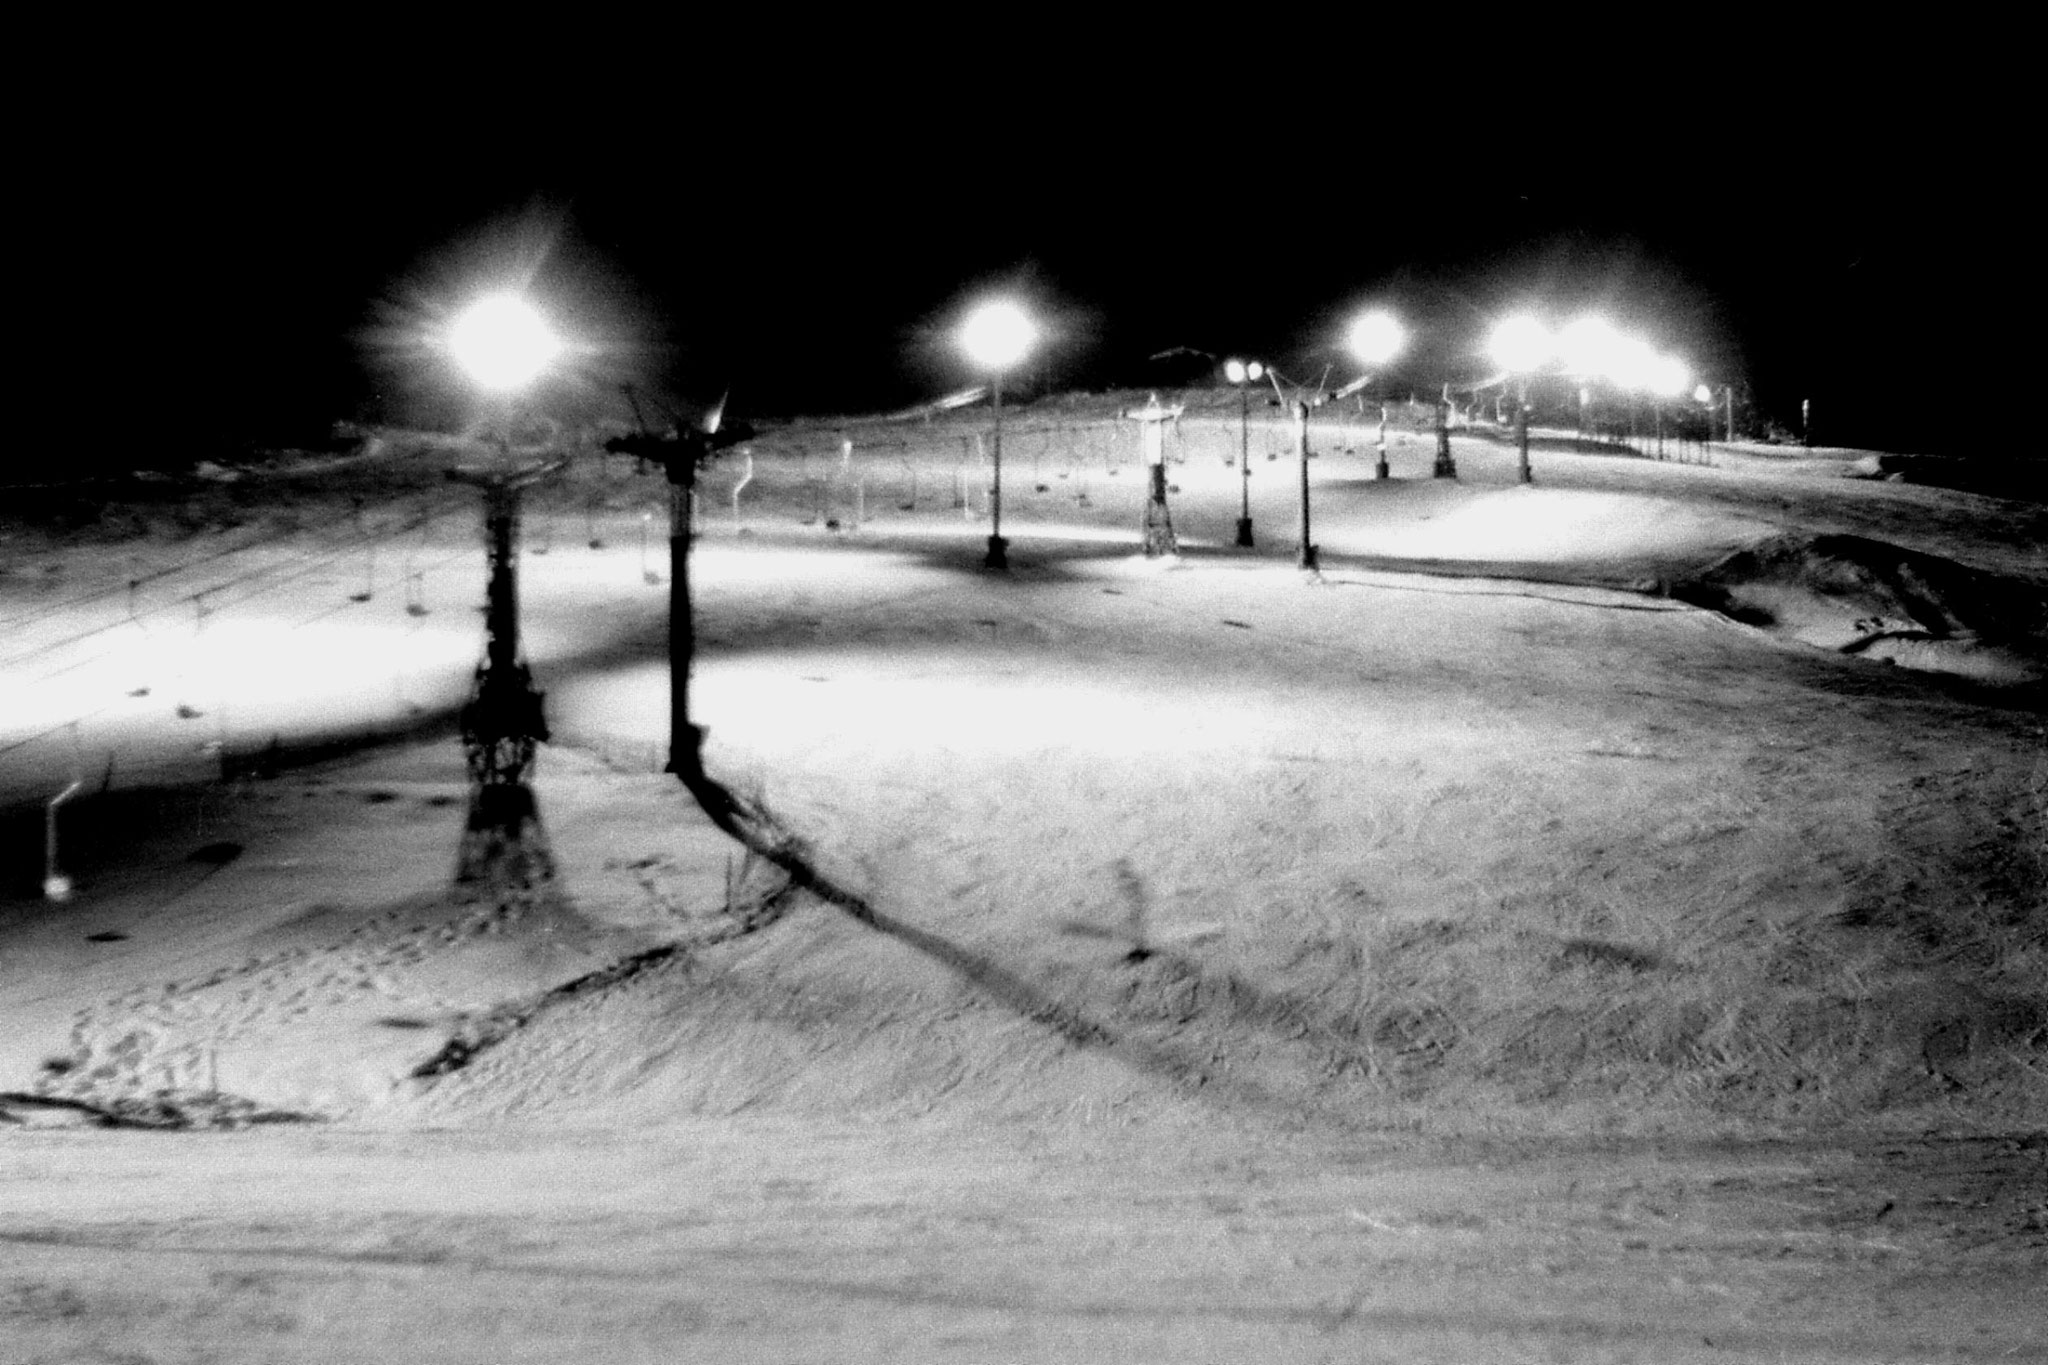 11/1/1989: 5: Floodlit ski slope outside hostel at Asahigawa